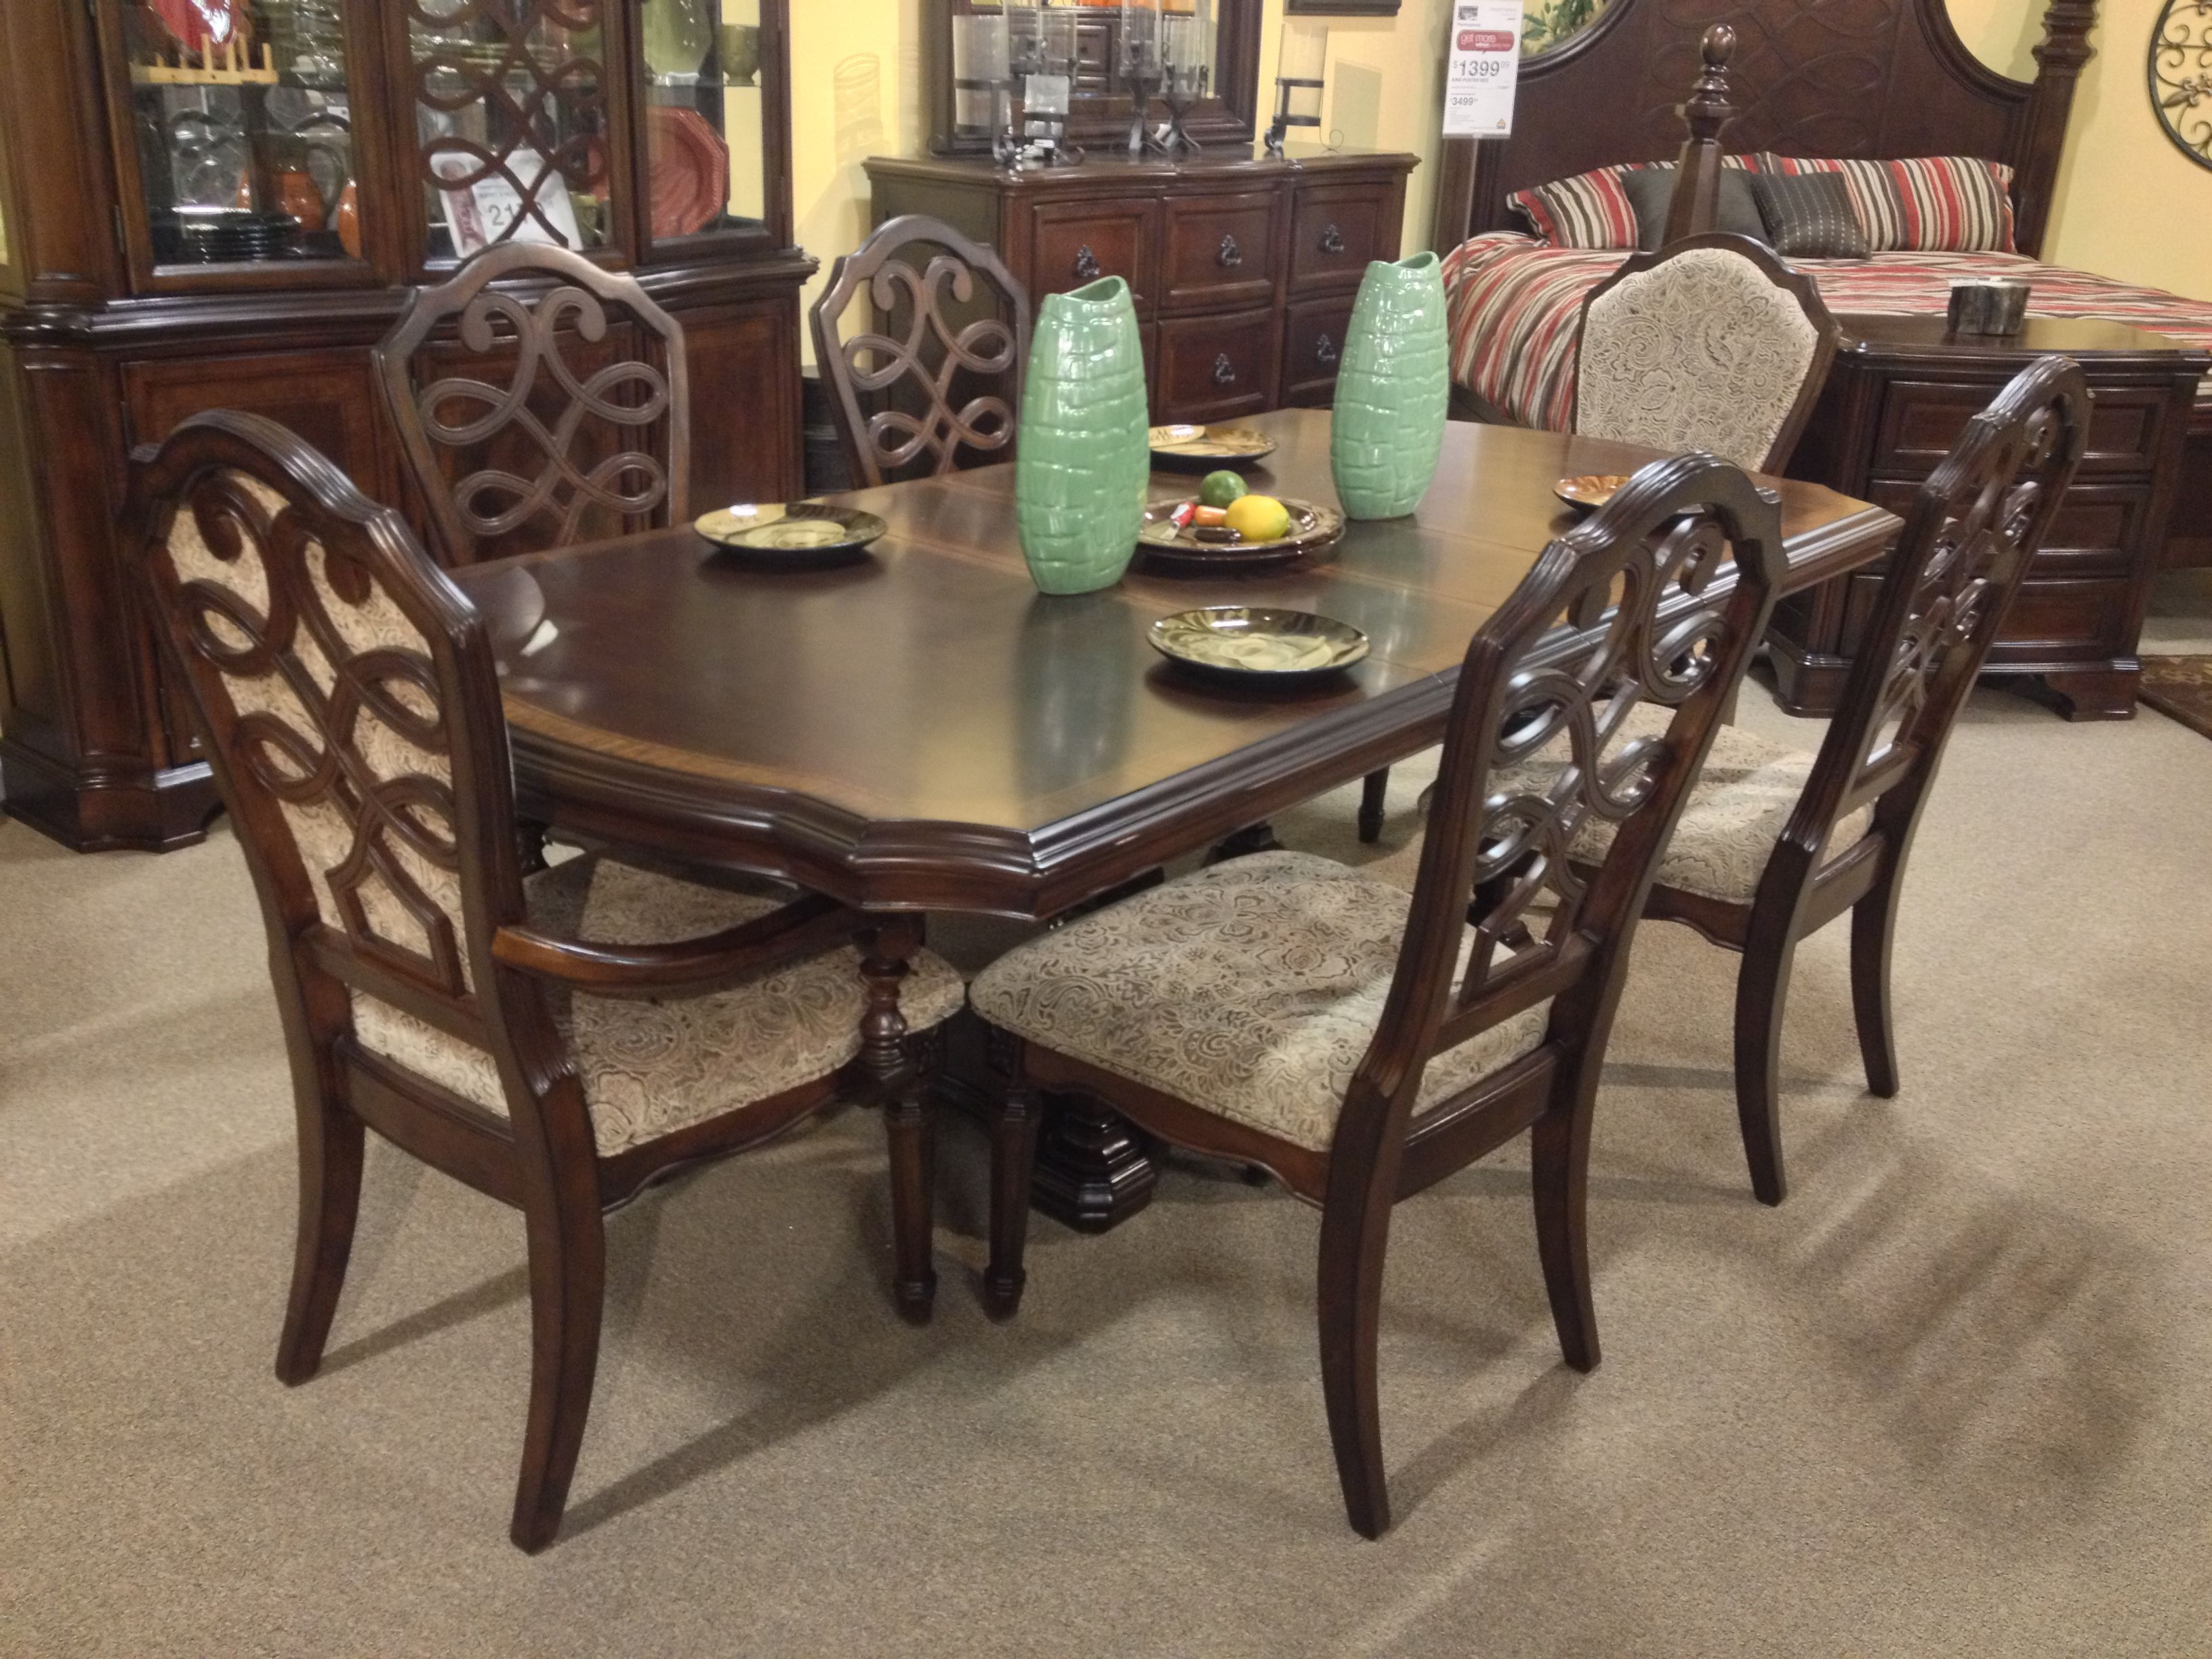 Flemingsburg 7 Piece #dining Room Set Ashley #furniture In Unique Ashley Dining Room Table Set Design Inspiration